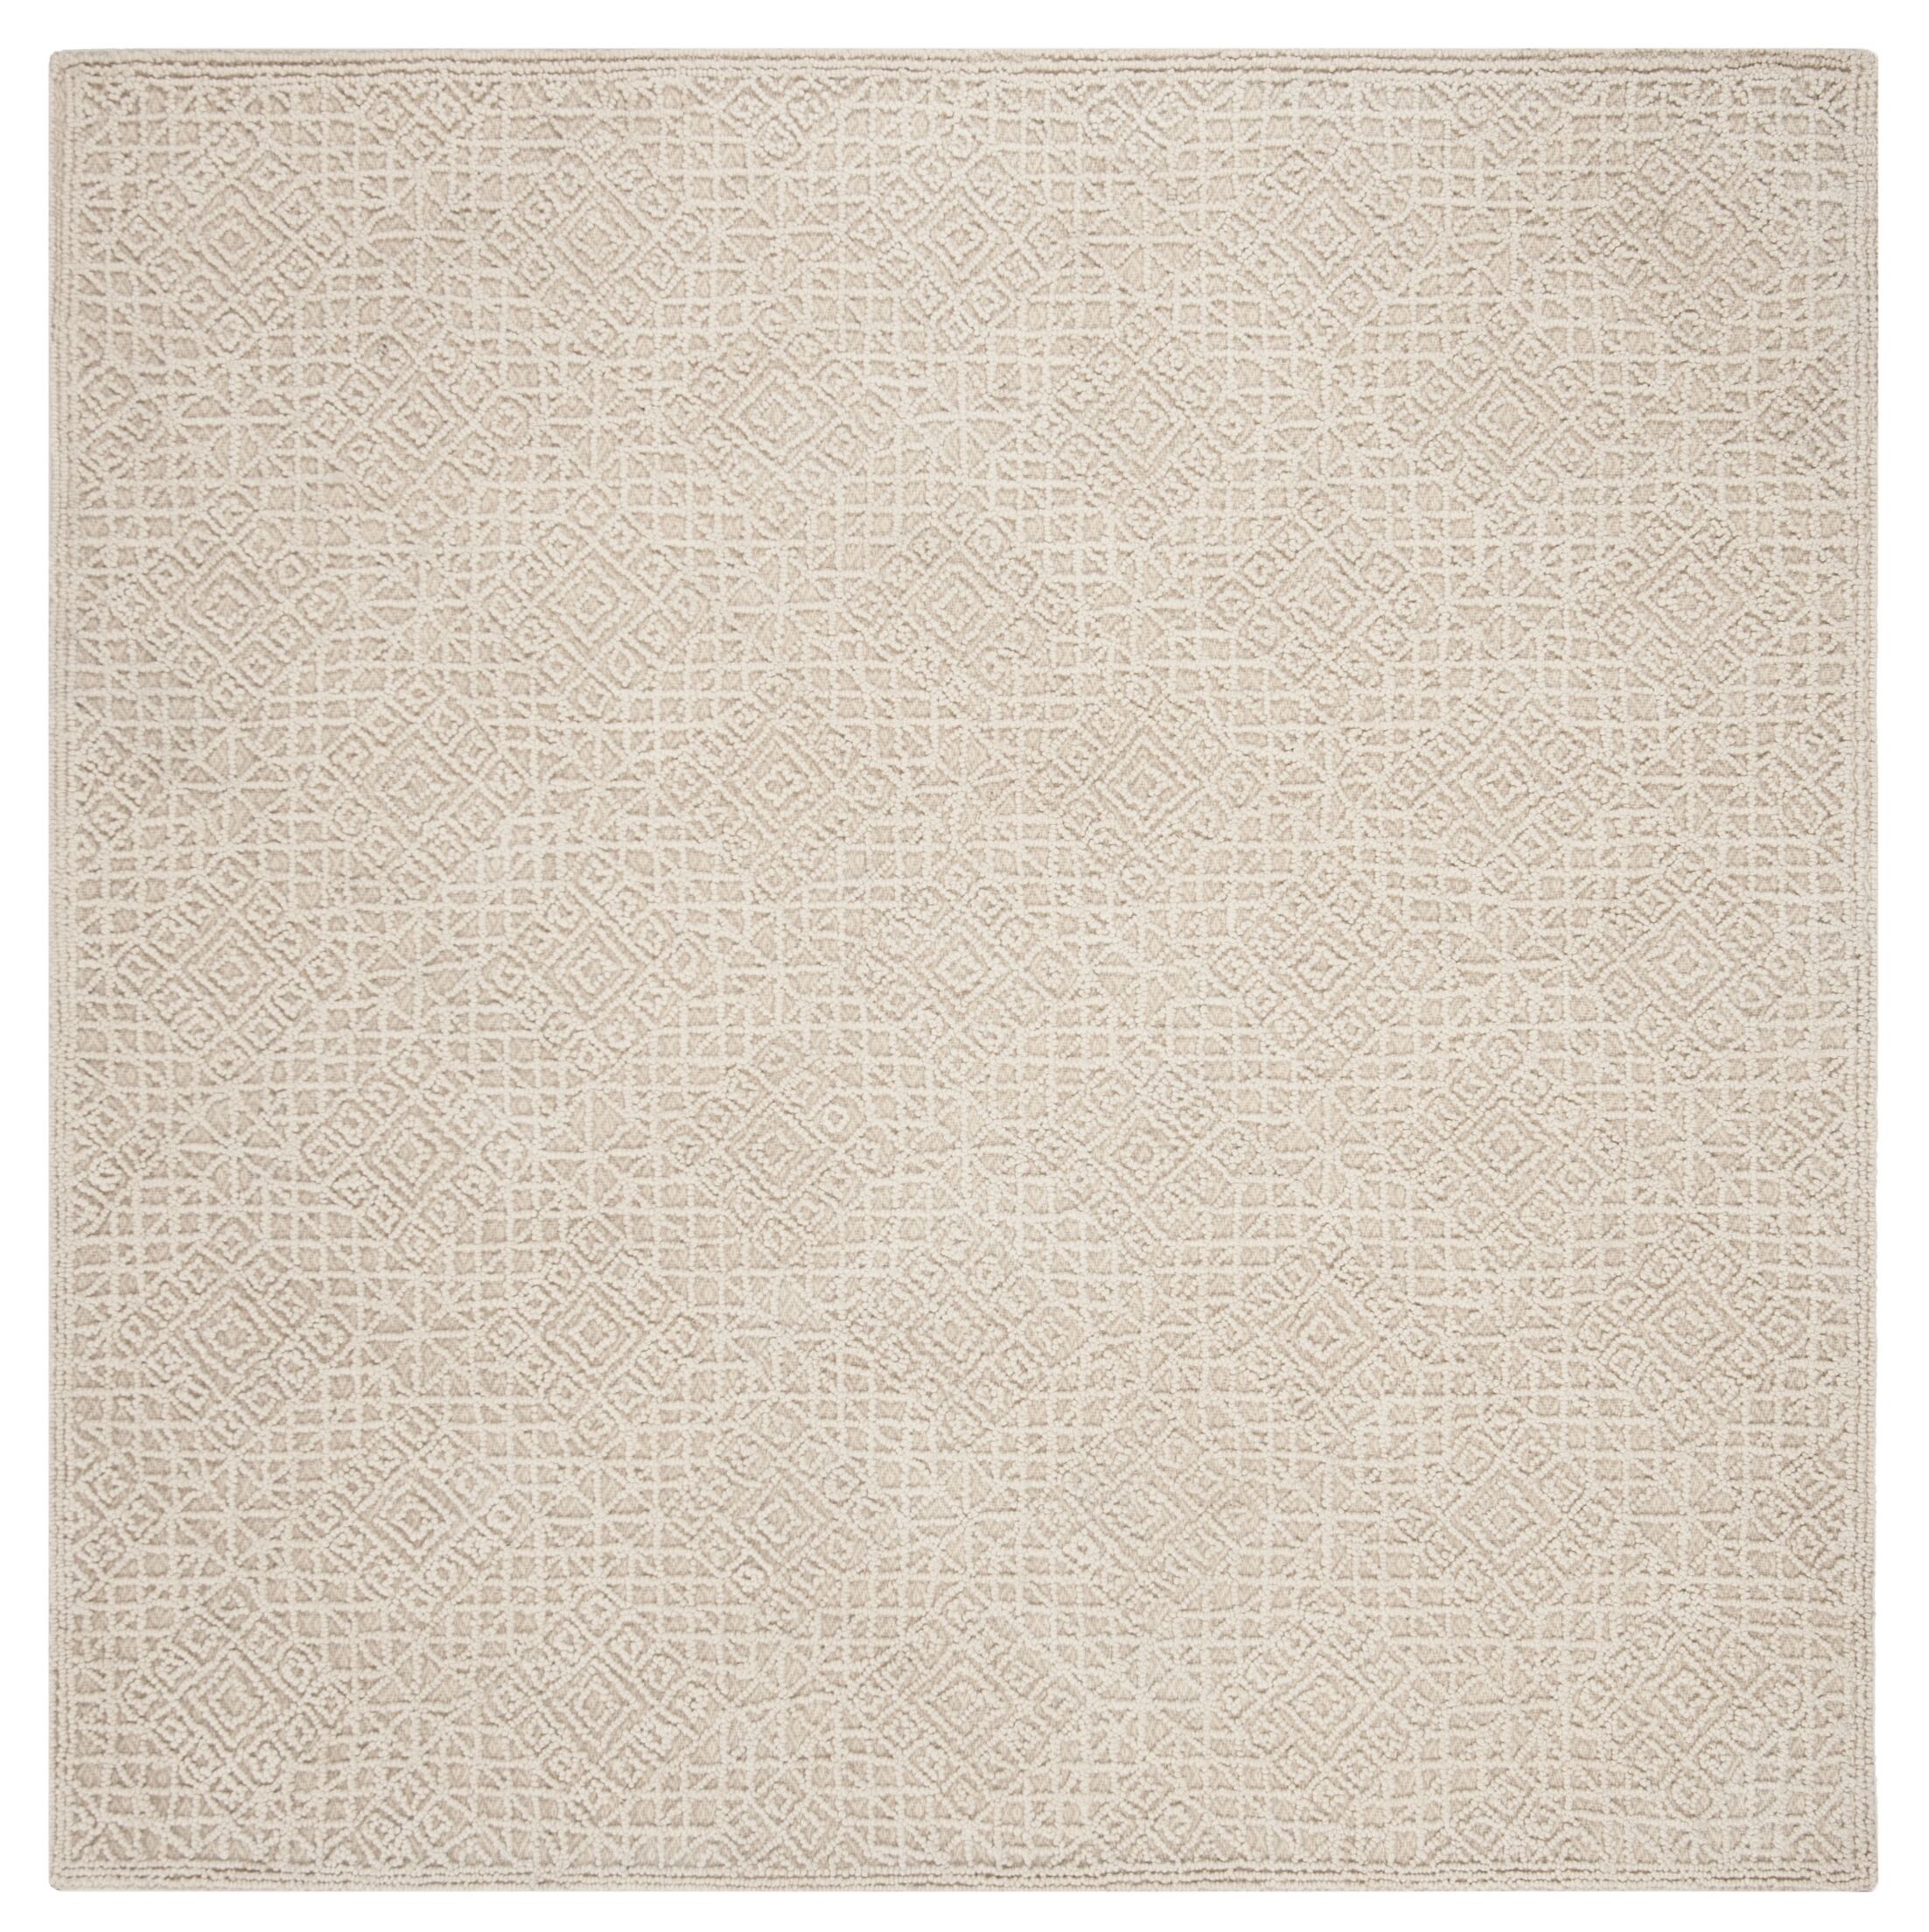 Saranac Hand-Tufted Wool Light Beige Area Rug Rug Size: Square 6' x 6'